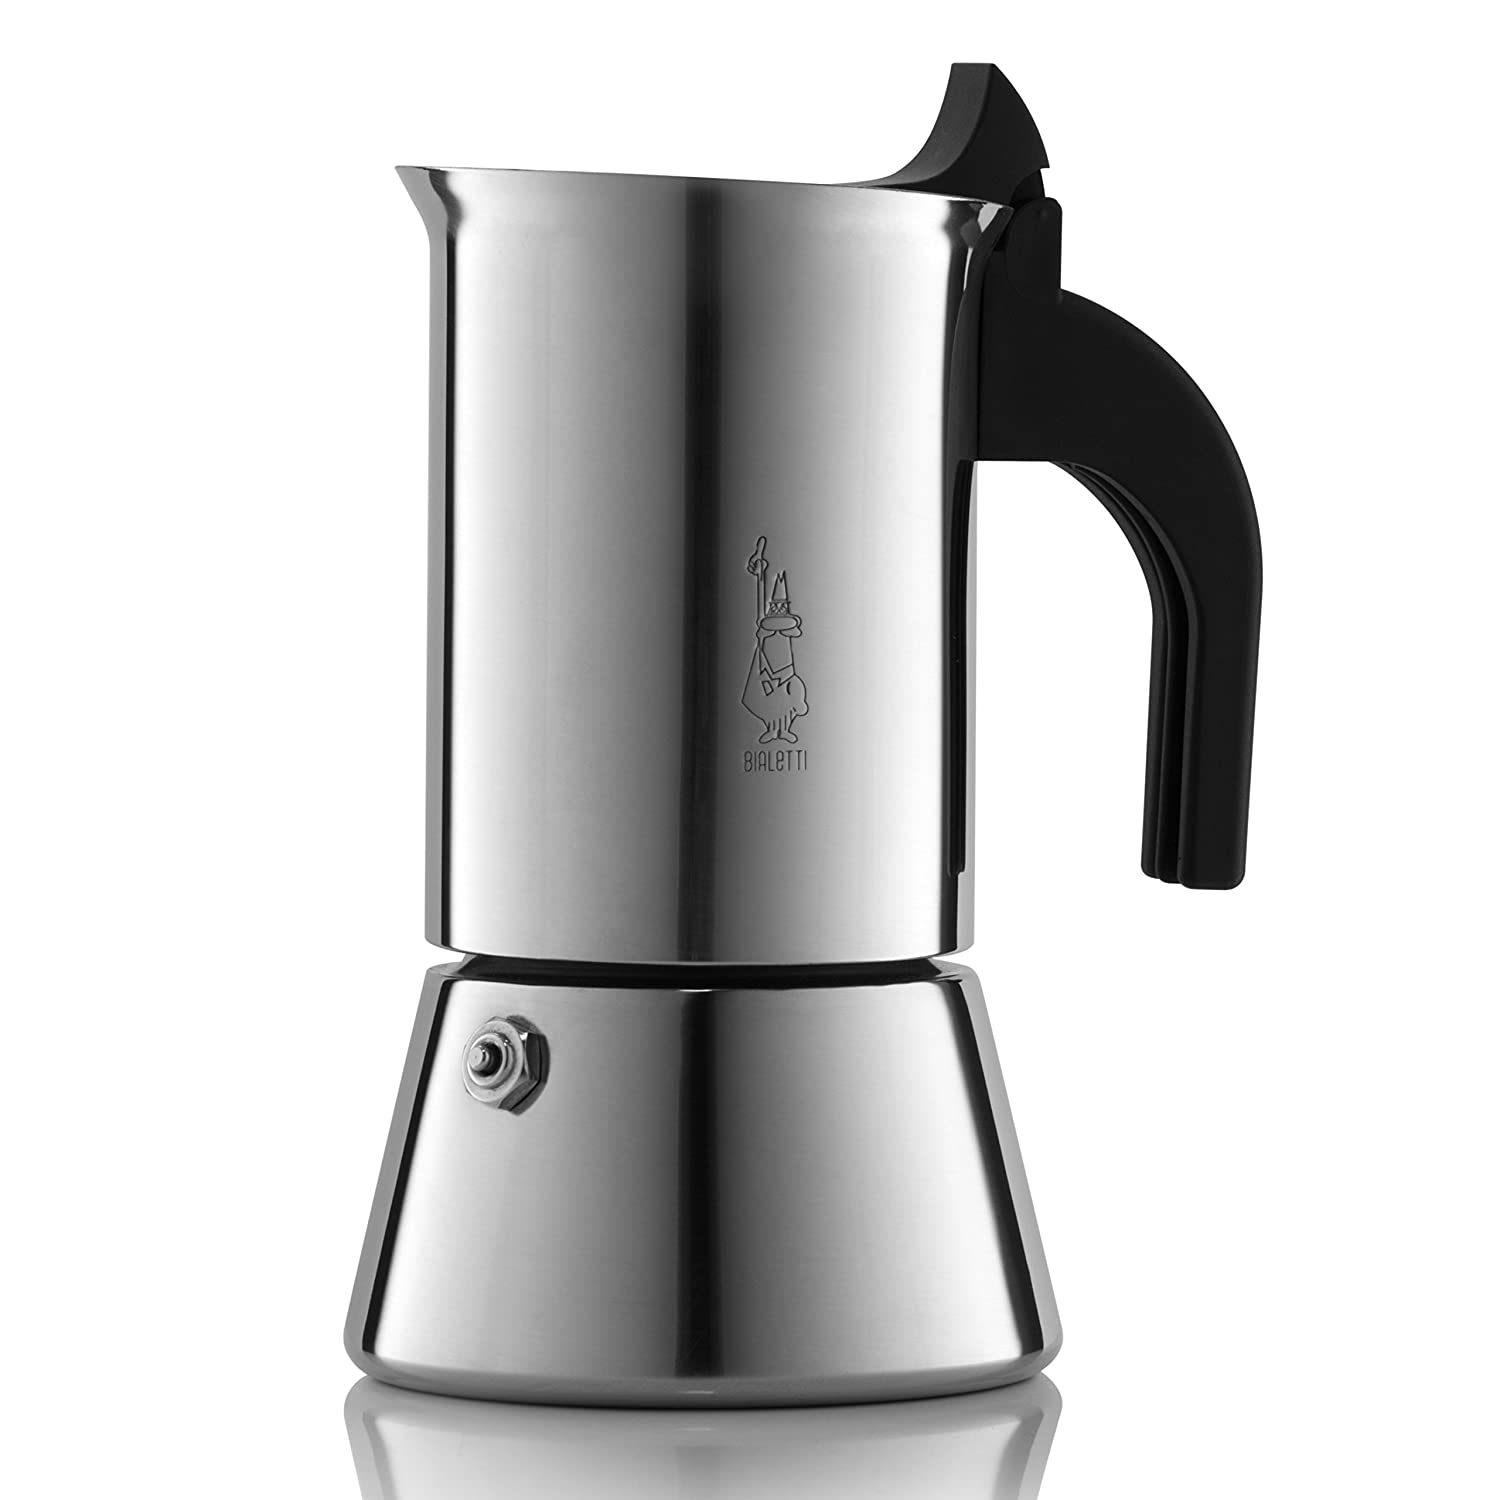 Venus Espresso Coffee Maker, Stainless Steel